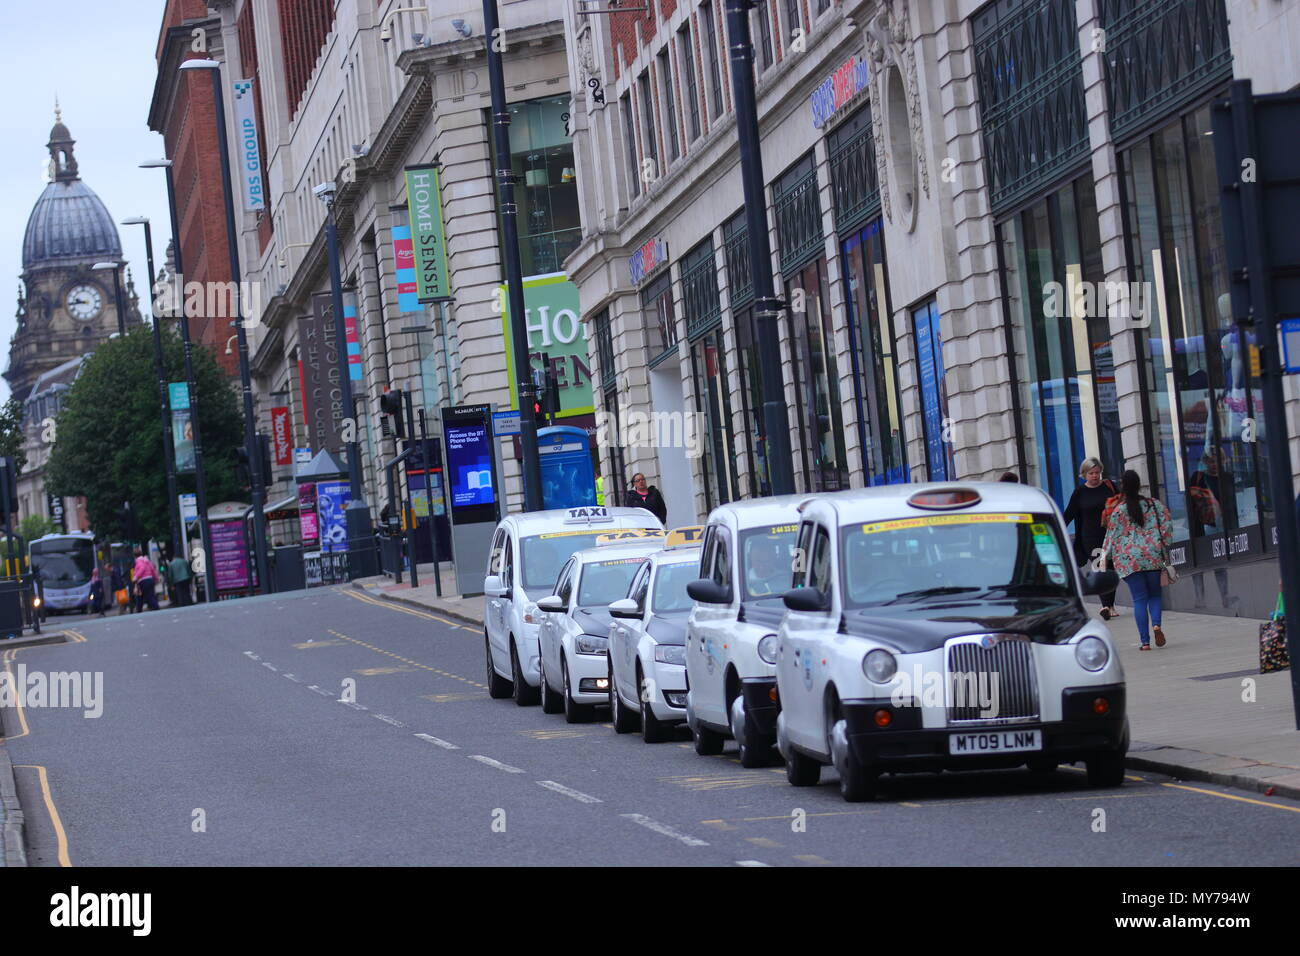 Leeds Black and White cabs - Stock Image